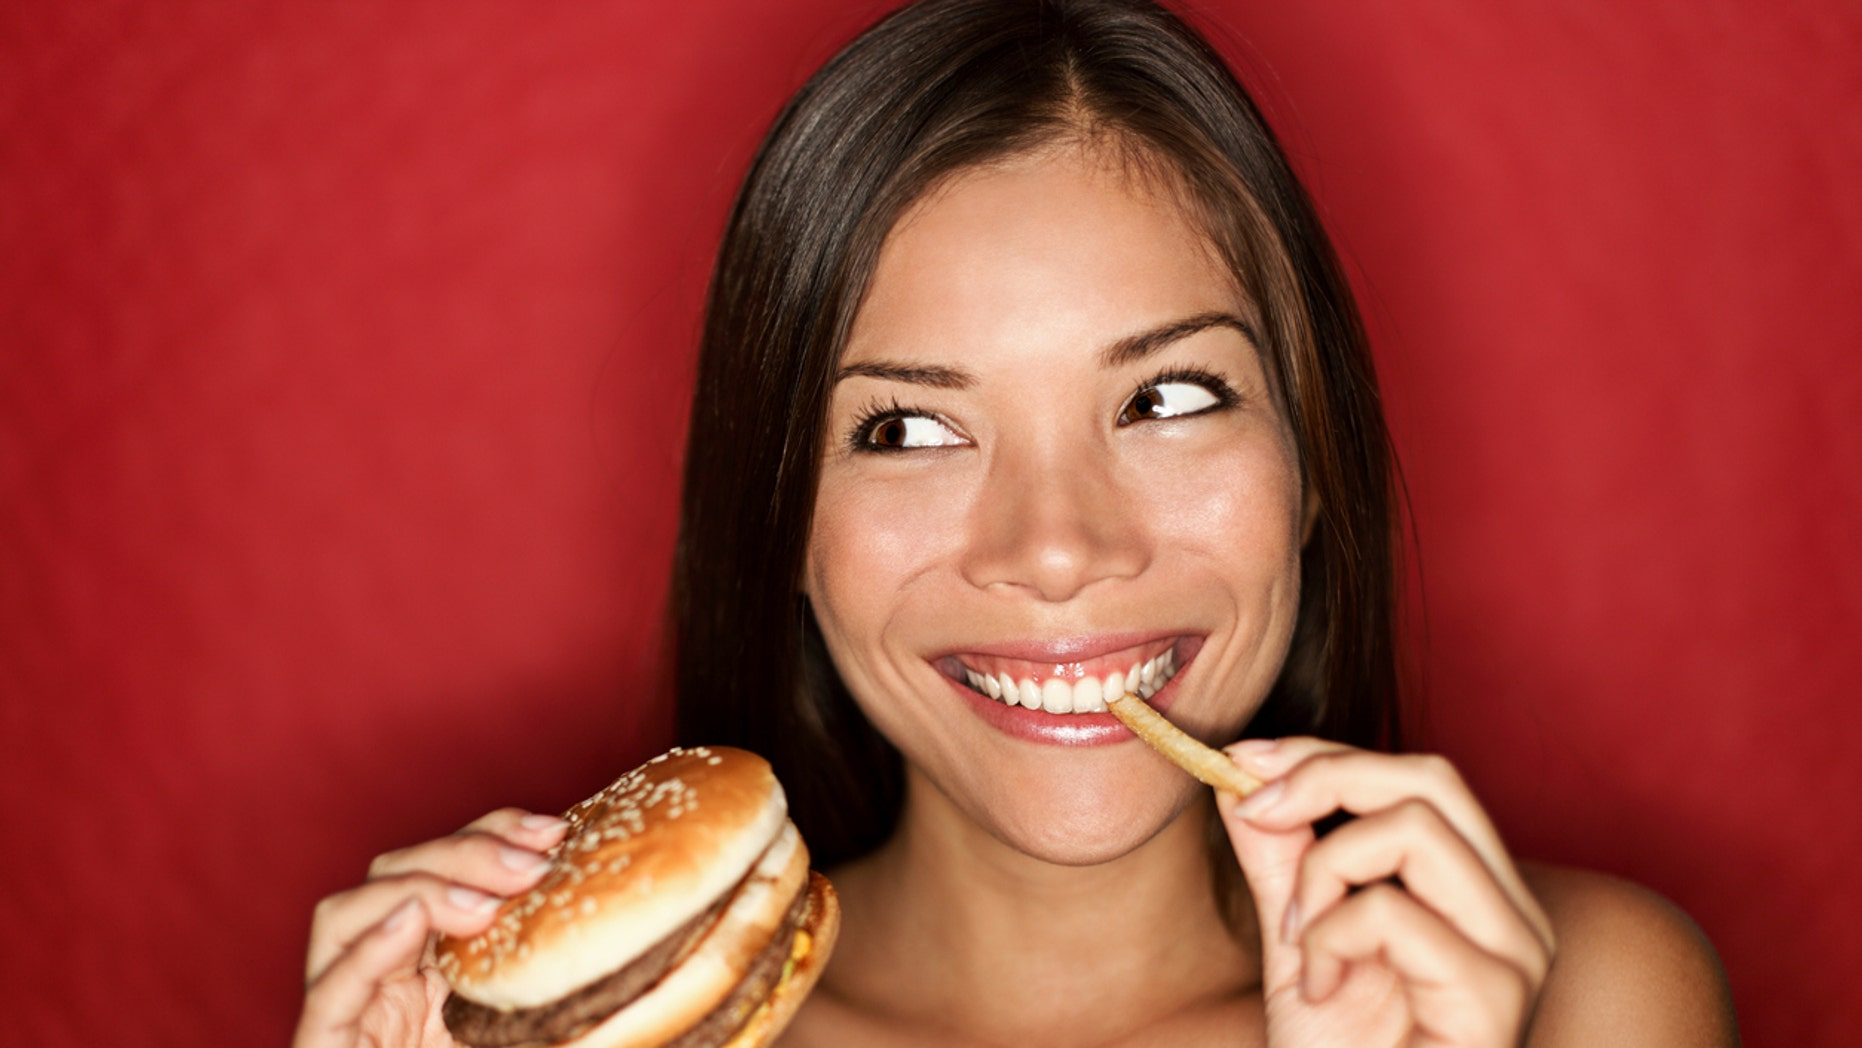 A high school senior decided to use McDonald's at the backdrop for her senior photos.